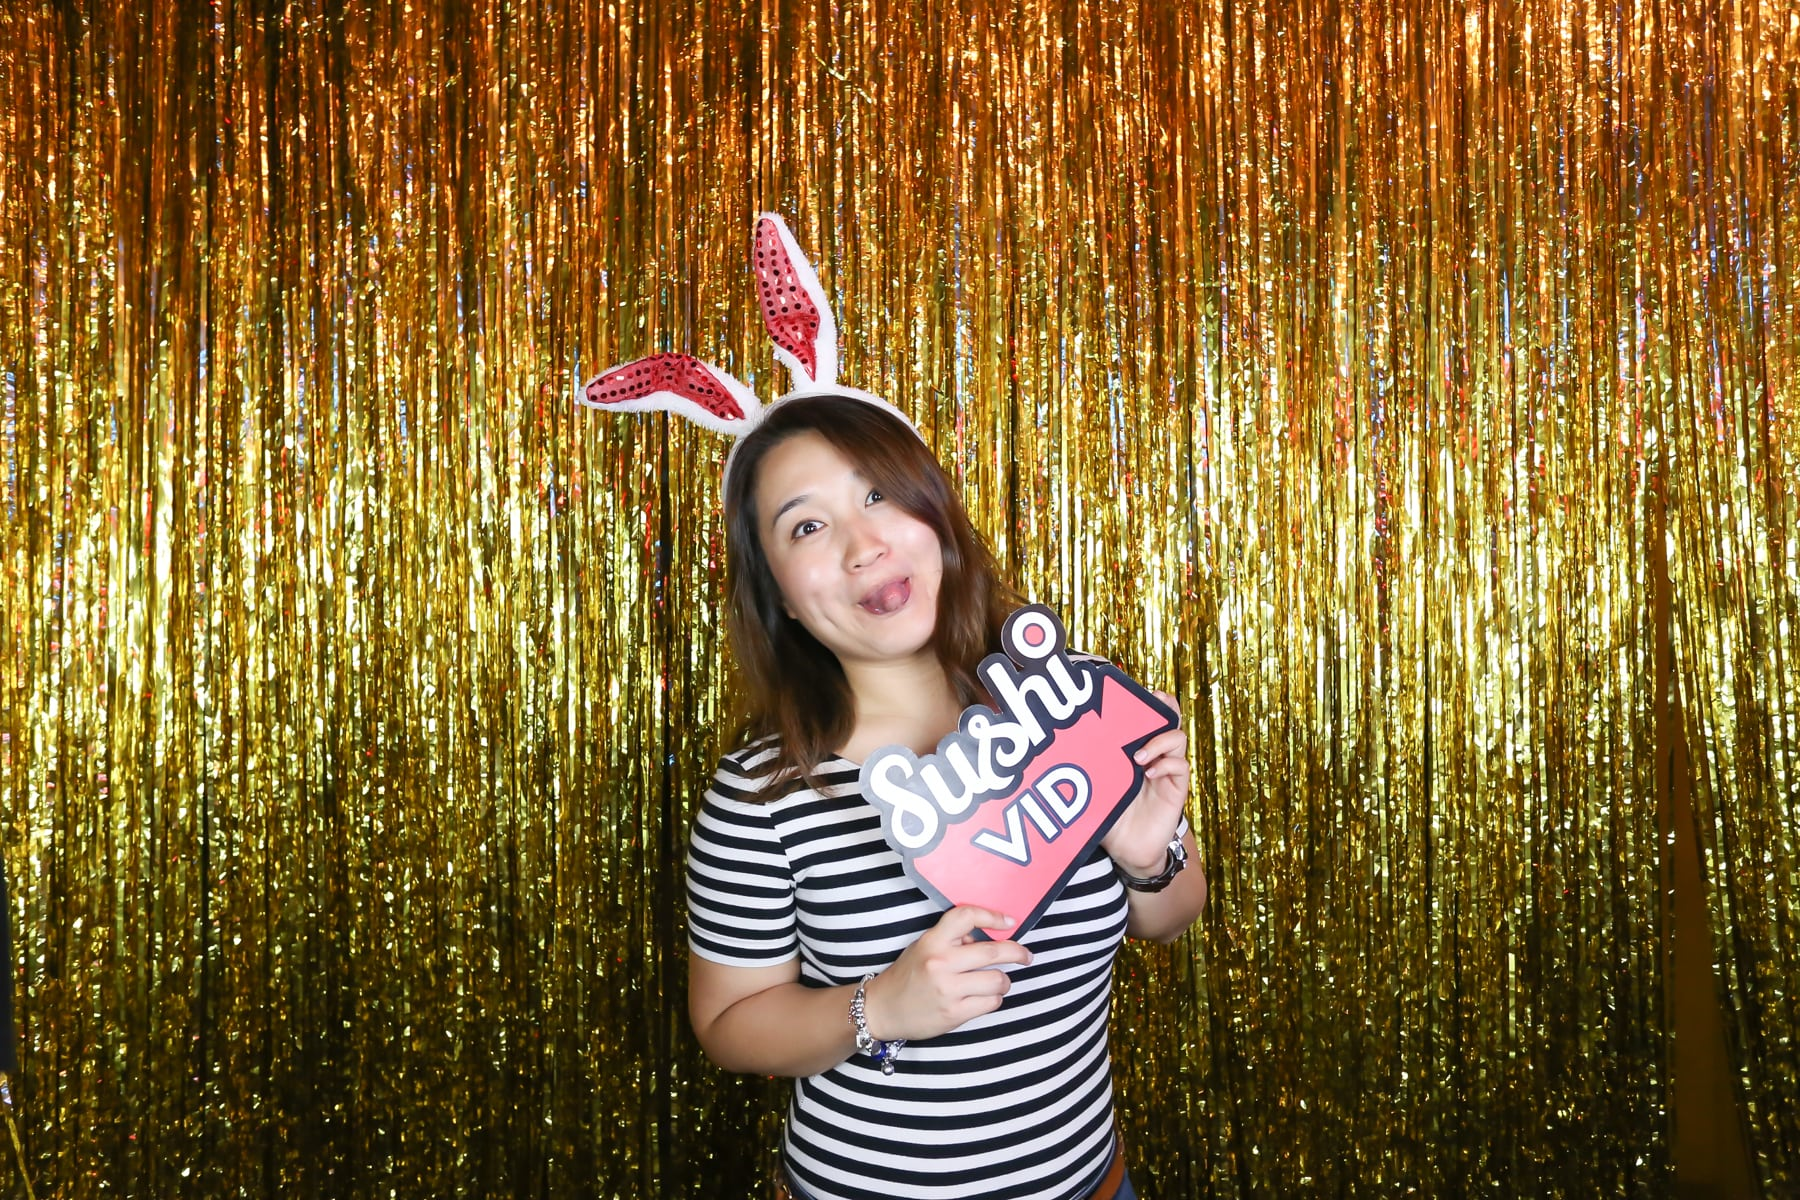 Sushivid+crunch+tagbooth+167